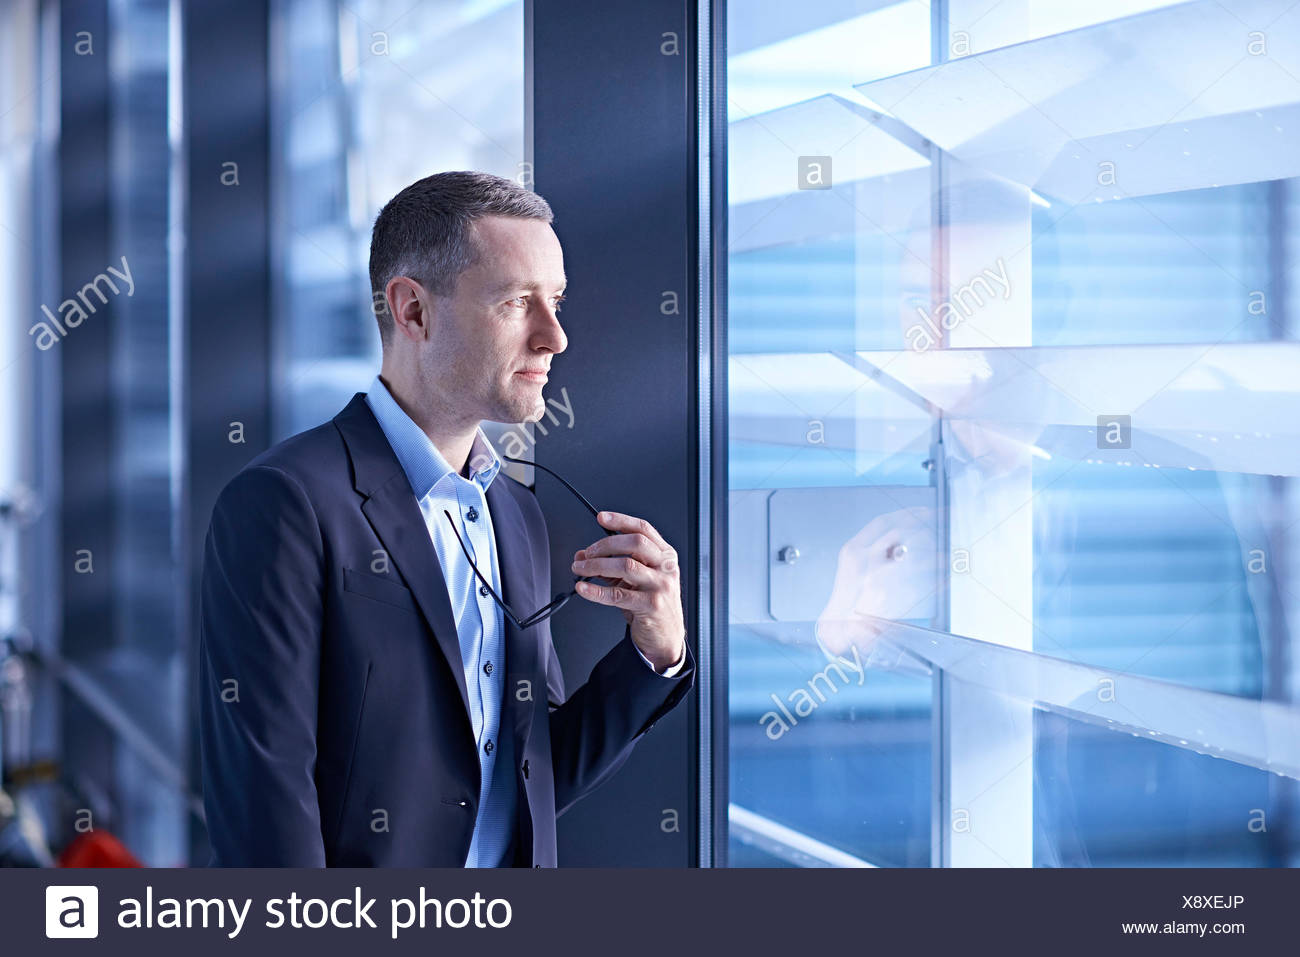 Businessman holding eyeglasses and looking through office window - Stock Image